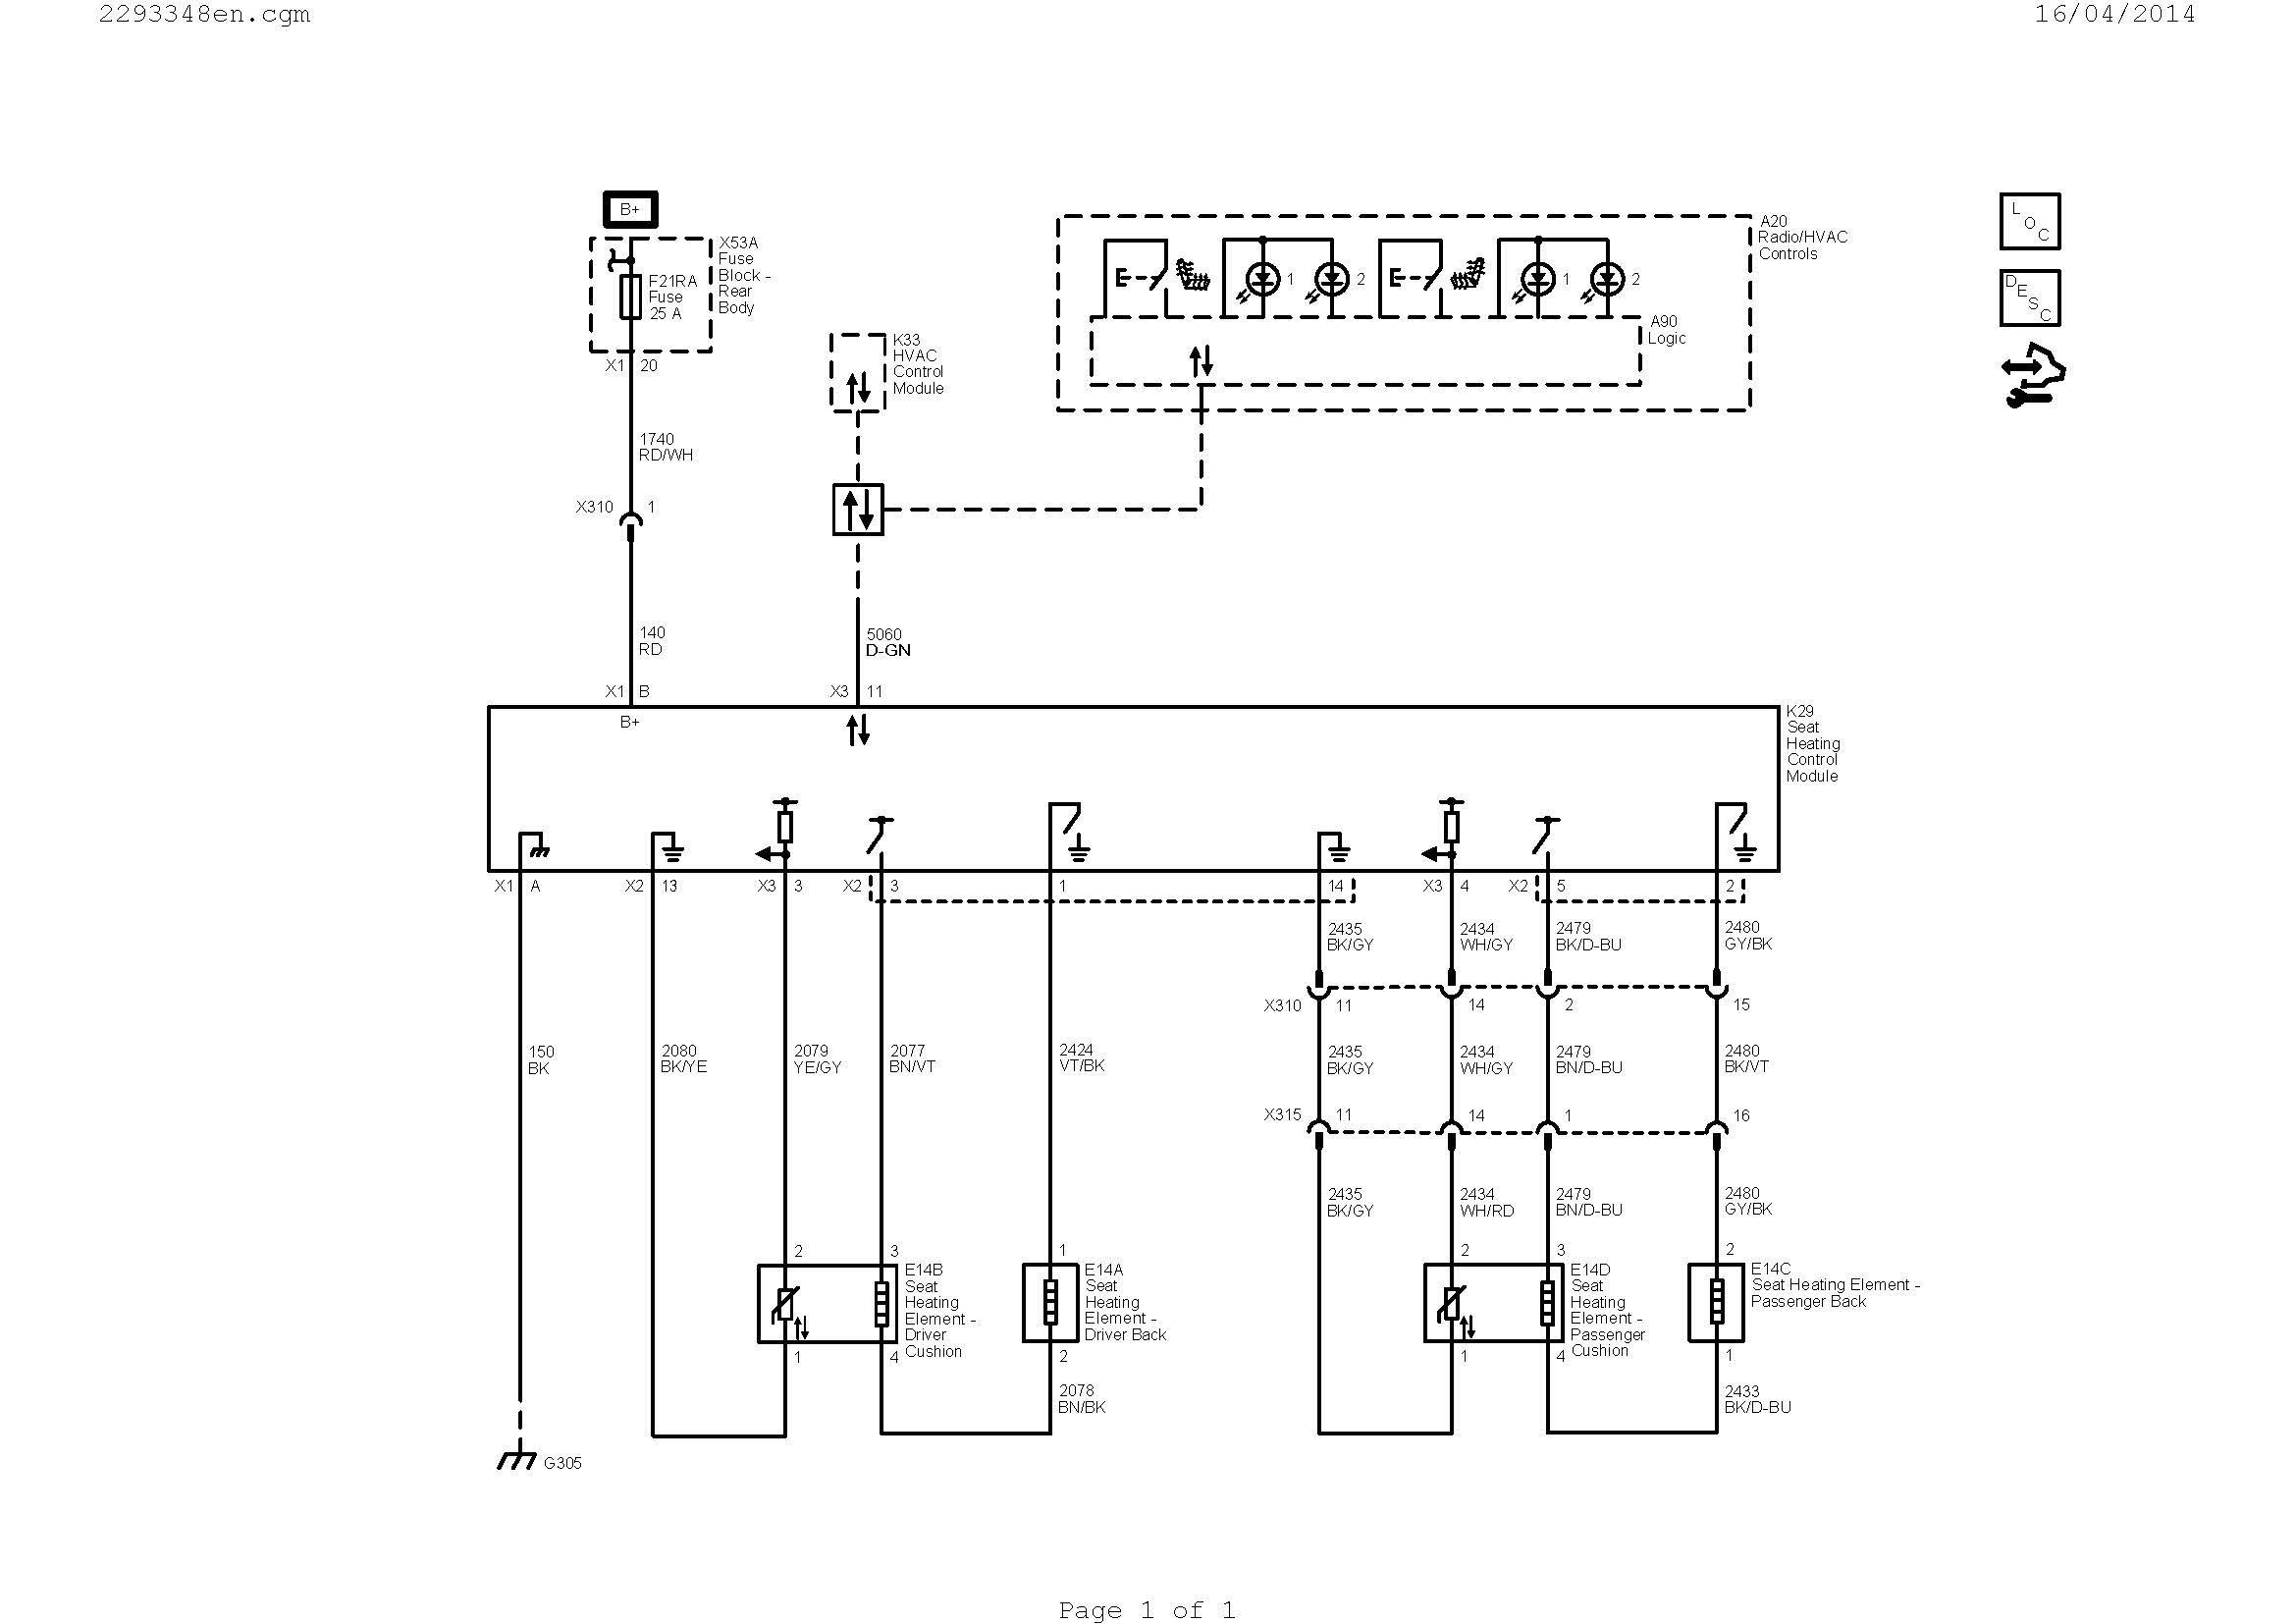 Nest 3rd Generation Wiring Diagram Elegant Nest Wireless Thermostat Wiring Diagram Refrence Wiring Diagram Ac